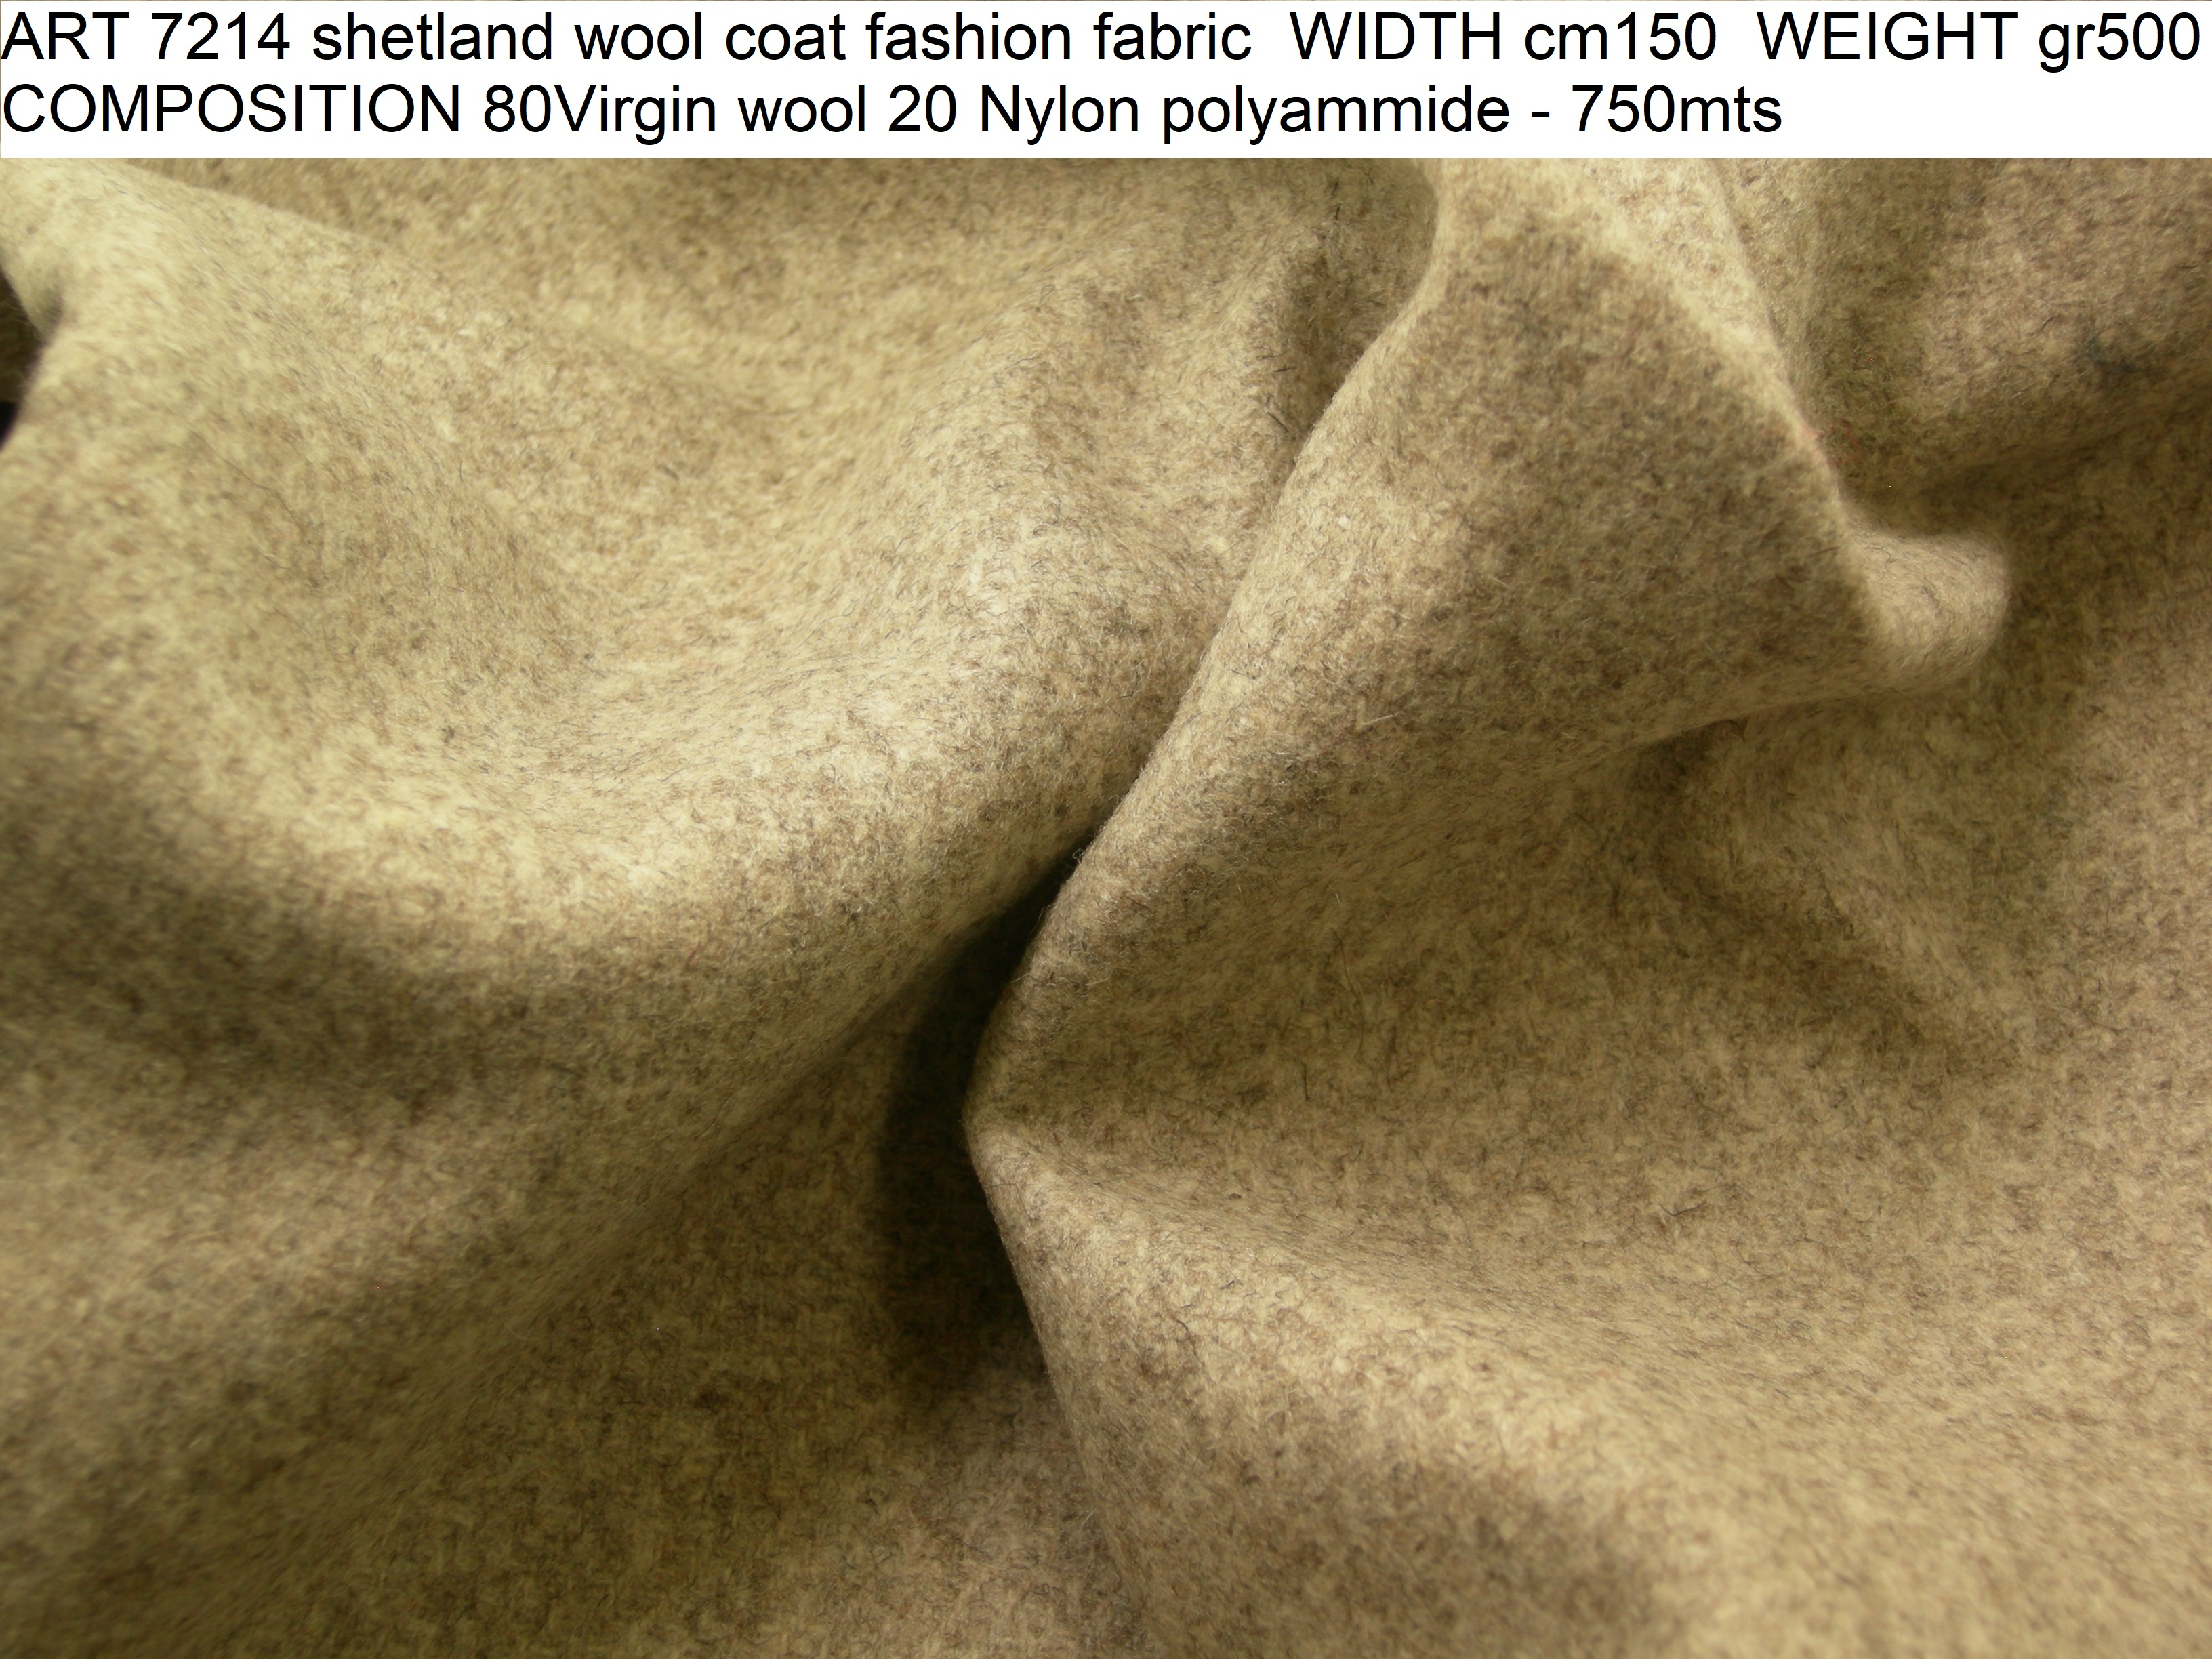 ART 7214 shetland wool coat fashion fabric WIDTH cm150 WEIGHT gr500 COMPOSITION 80Virgin wool 20 Nylon polyammide - 750mts